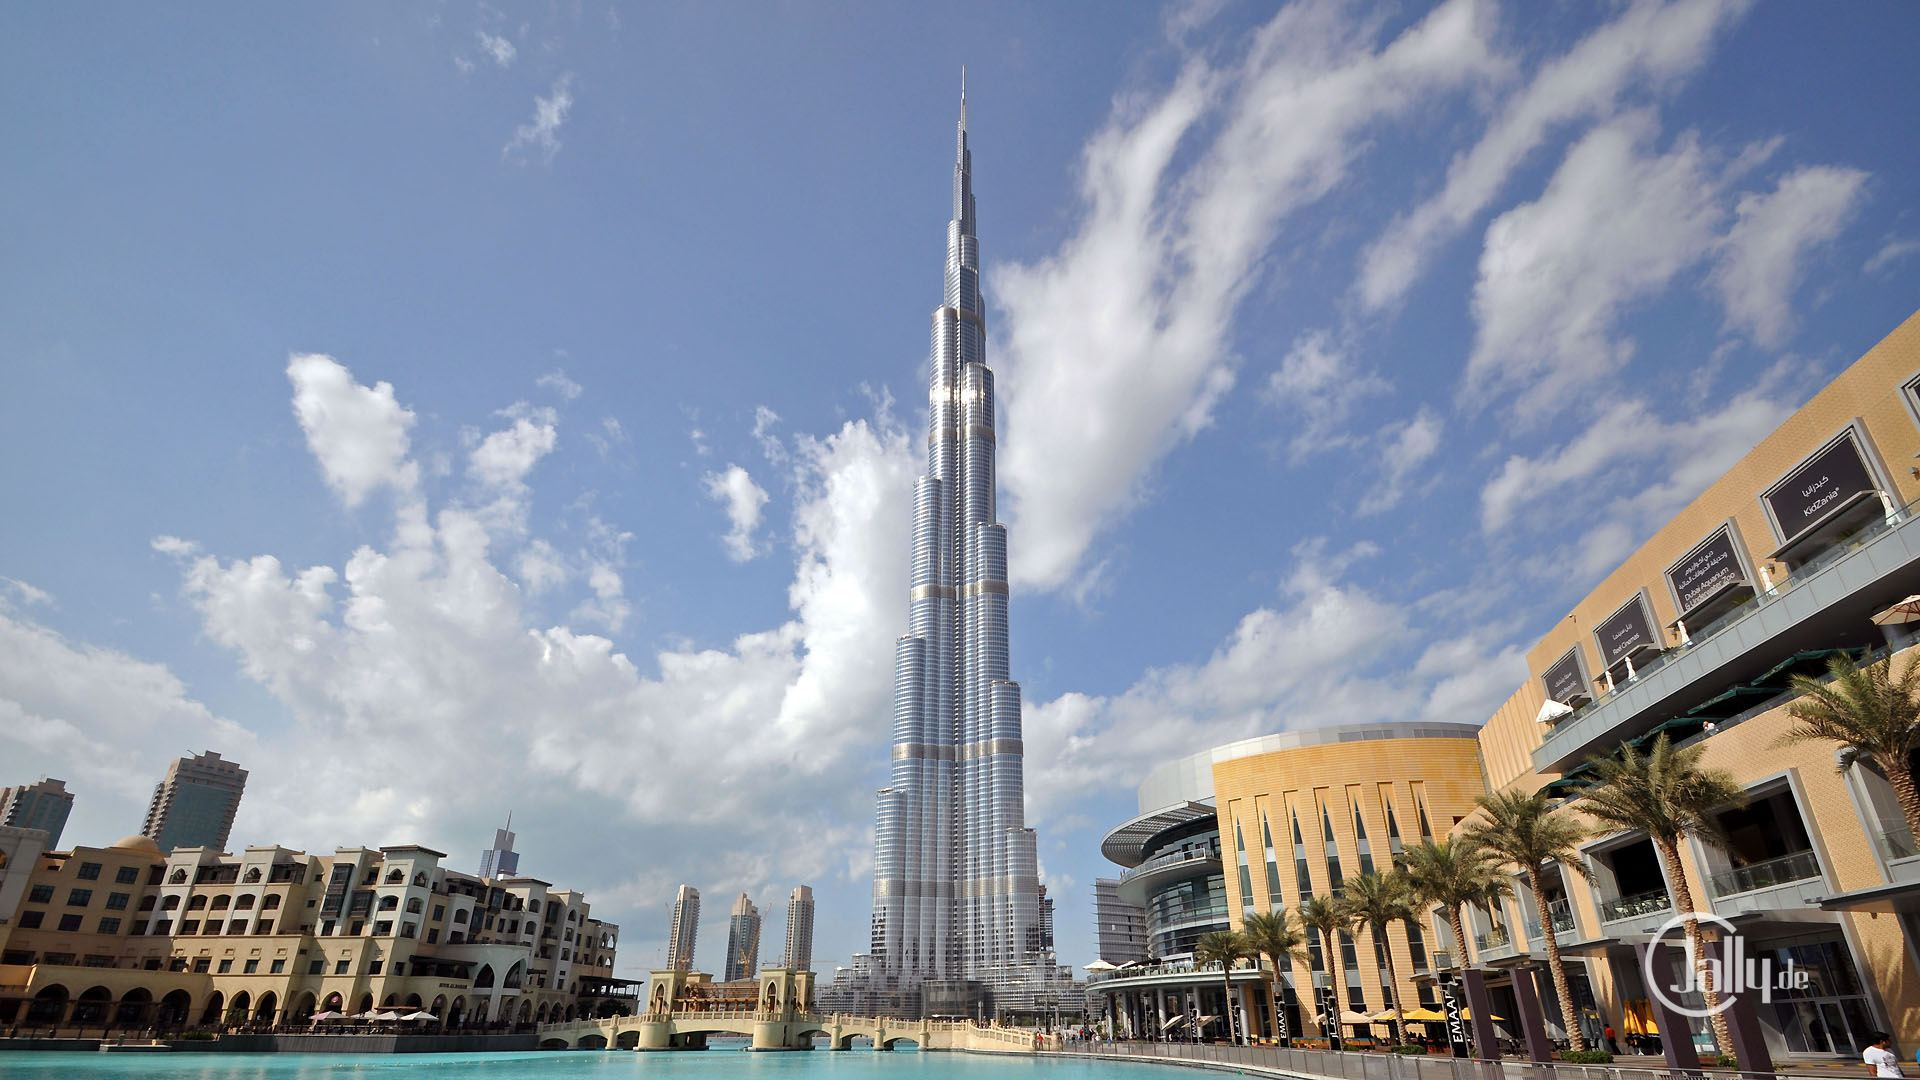 Burj khalifa wallpapers images photos pictures backgrounds for 3d wallpaper for home dubai